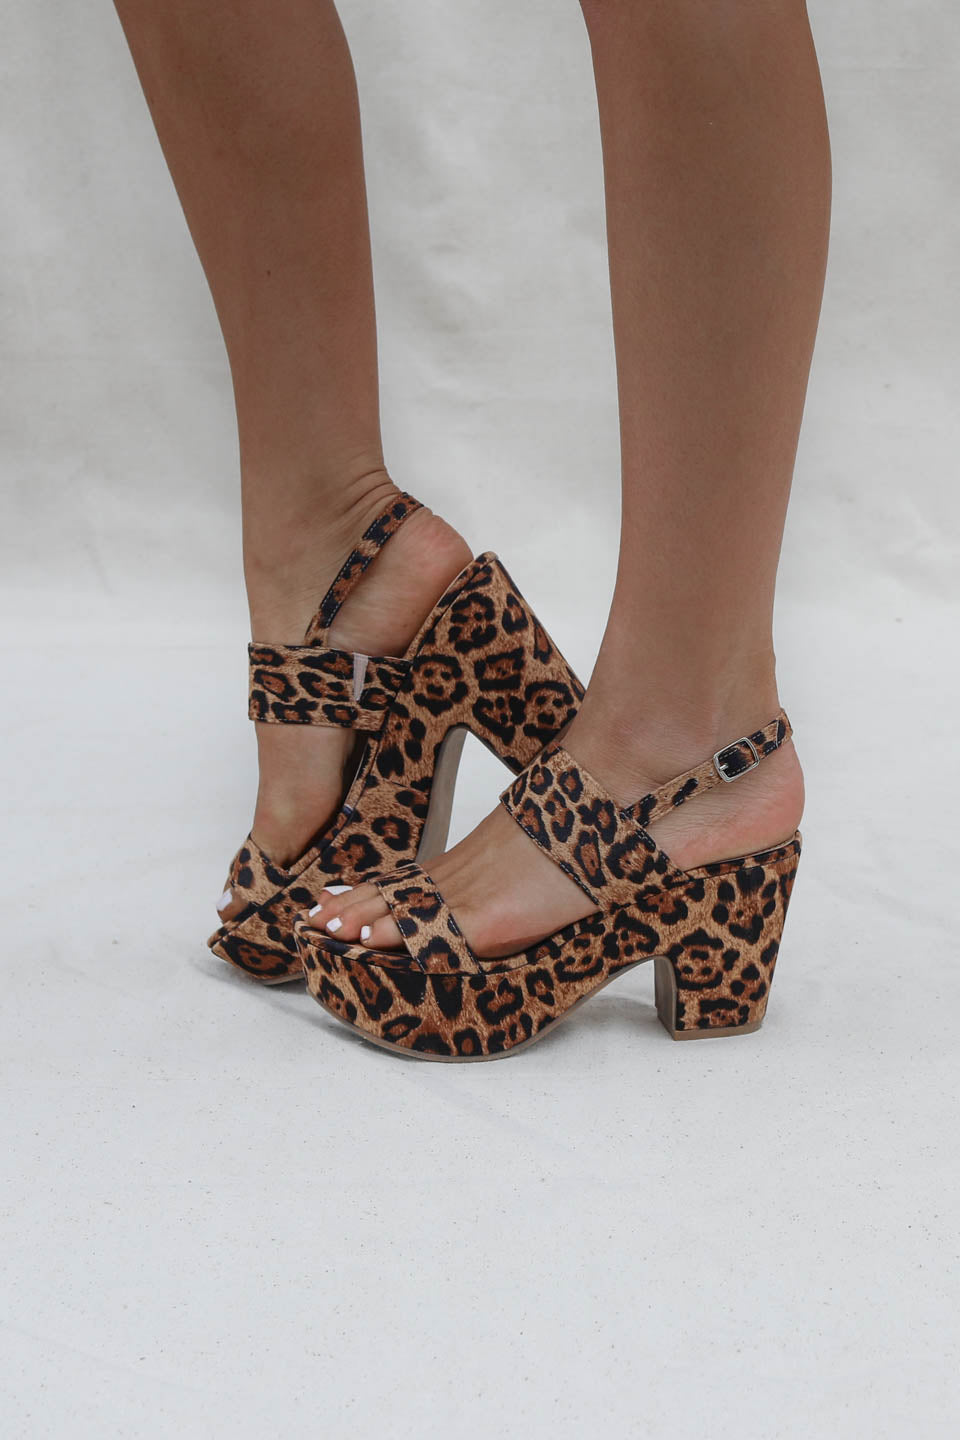 All Inclusive Leopard Platform Heel